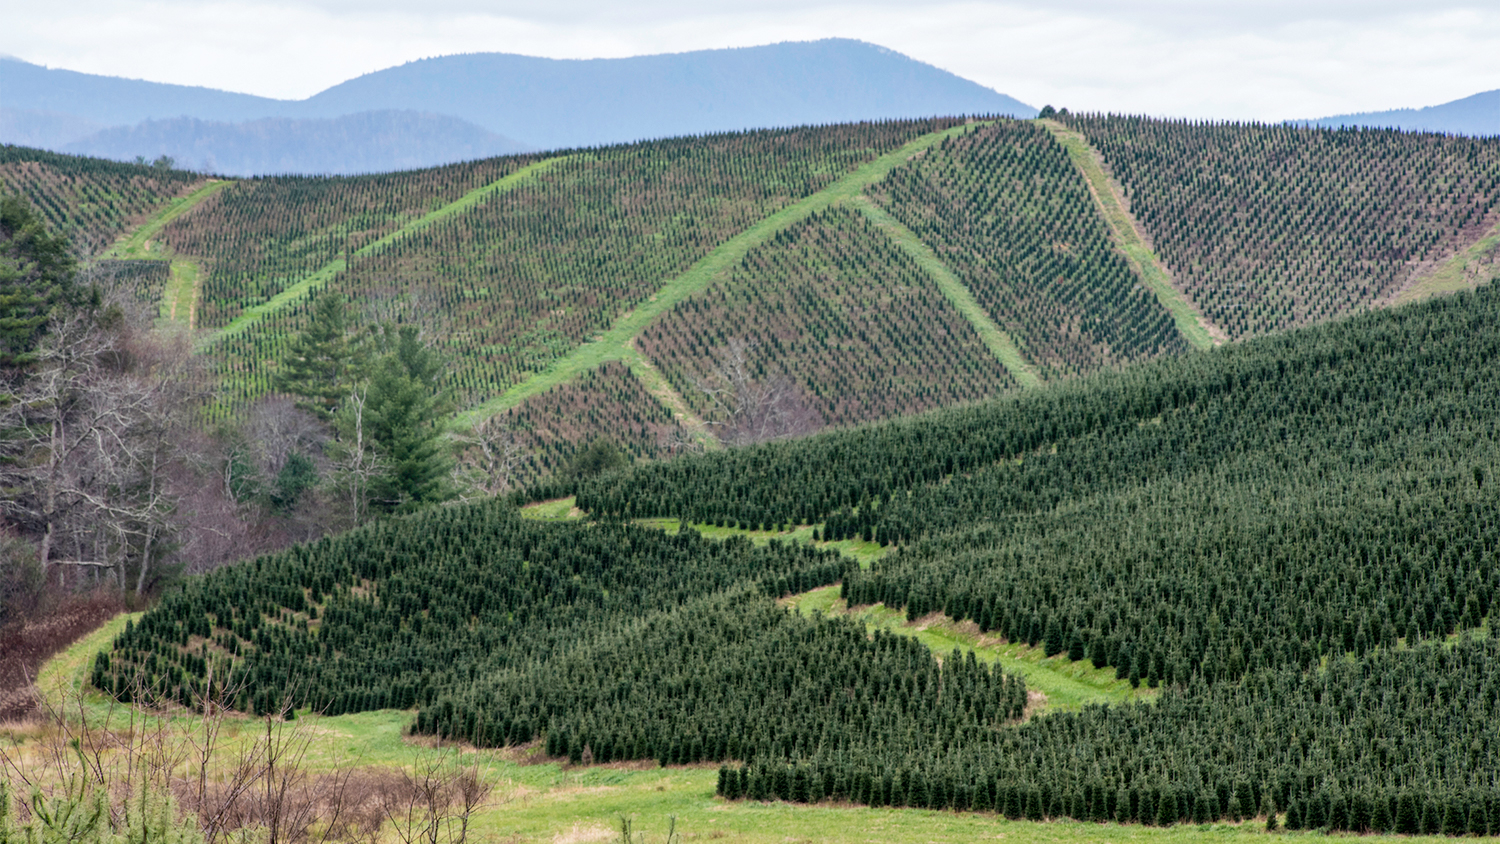 a large section of Christmas trees growing on a hillside outside Boone, North Carolina - North Carolina Christmas Tree Industry Expects a Record Year Despite Coronavirus Concerns - Forestry and Environmental Resources NC State University